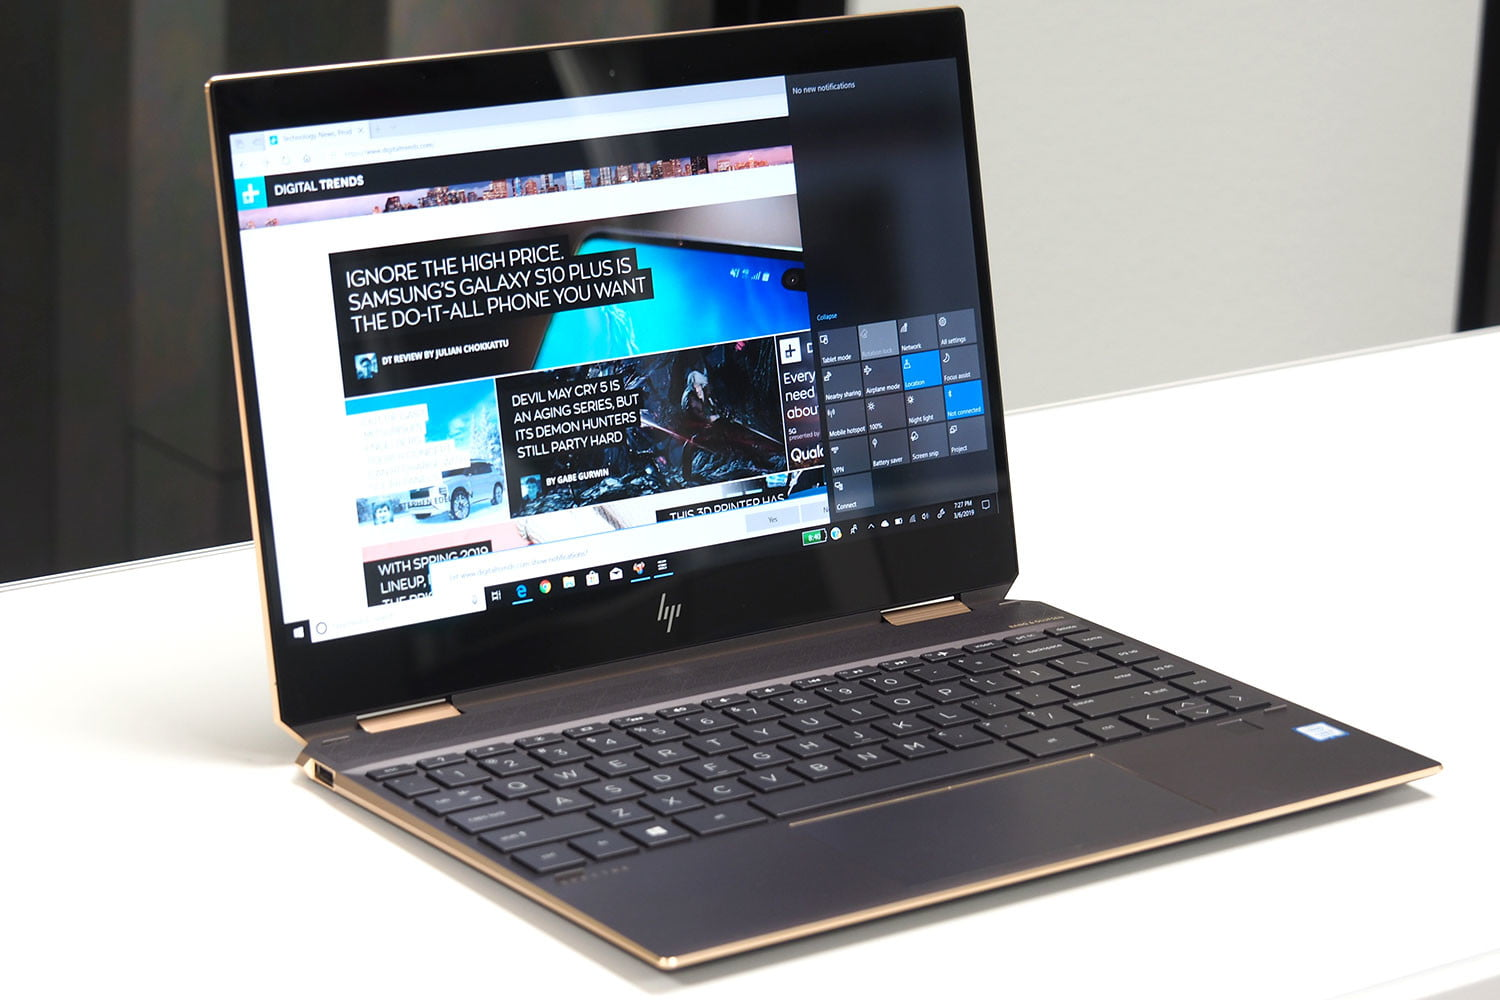 hp-spectre-x360-13-2019-review-14-1500x1000-jpg.6660